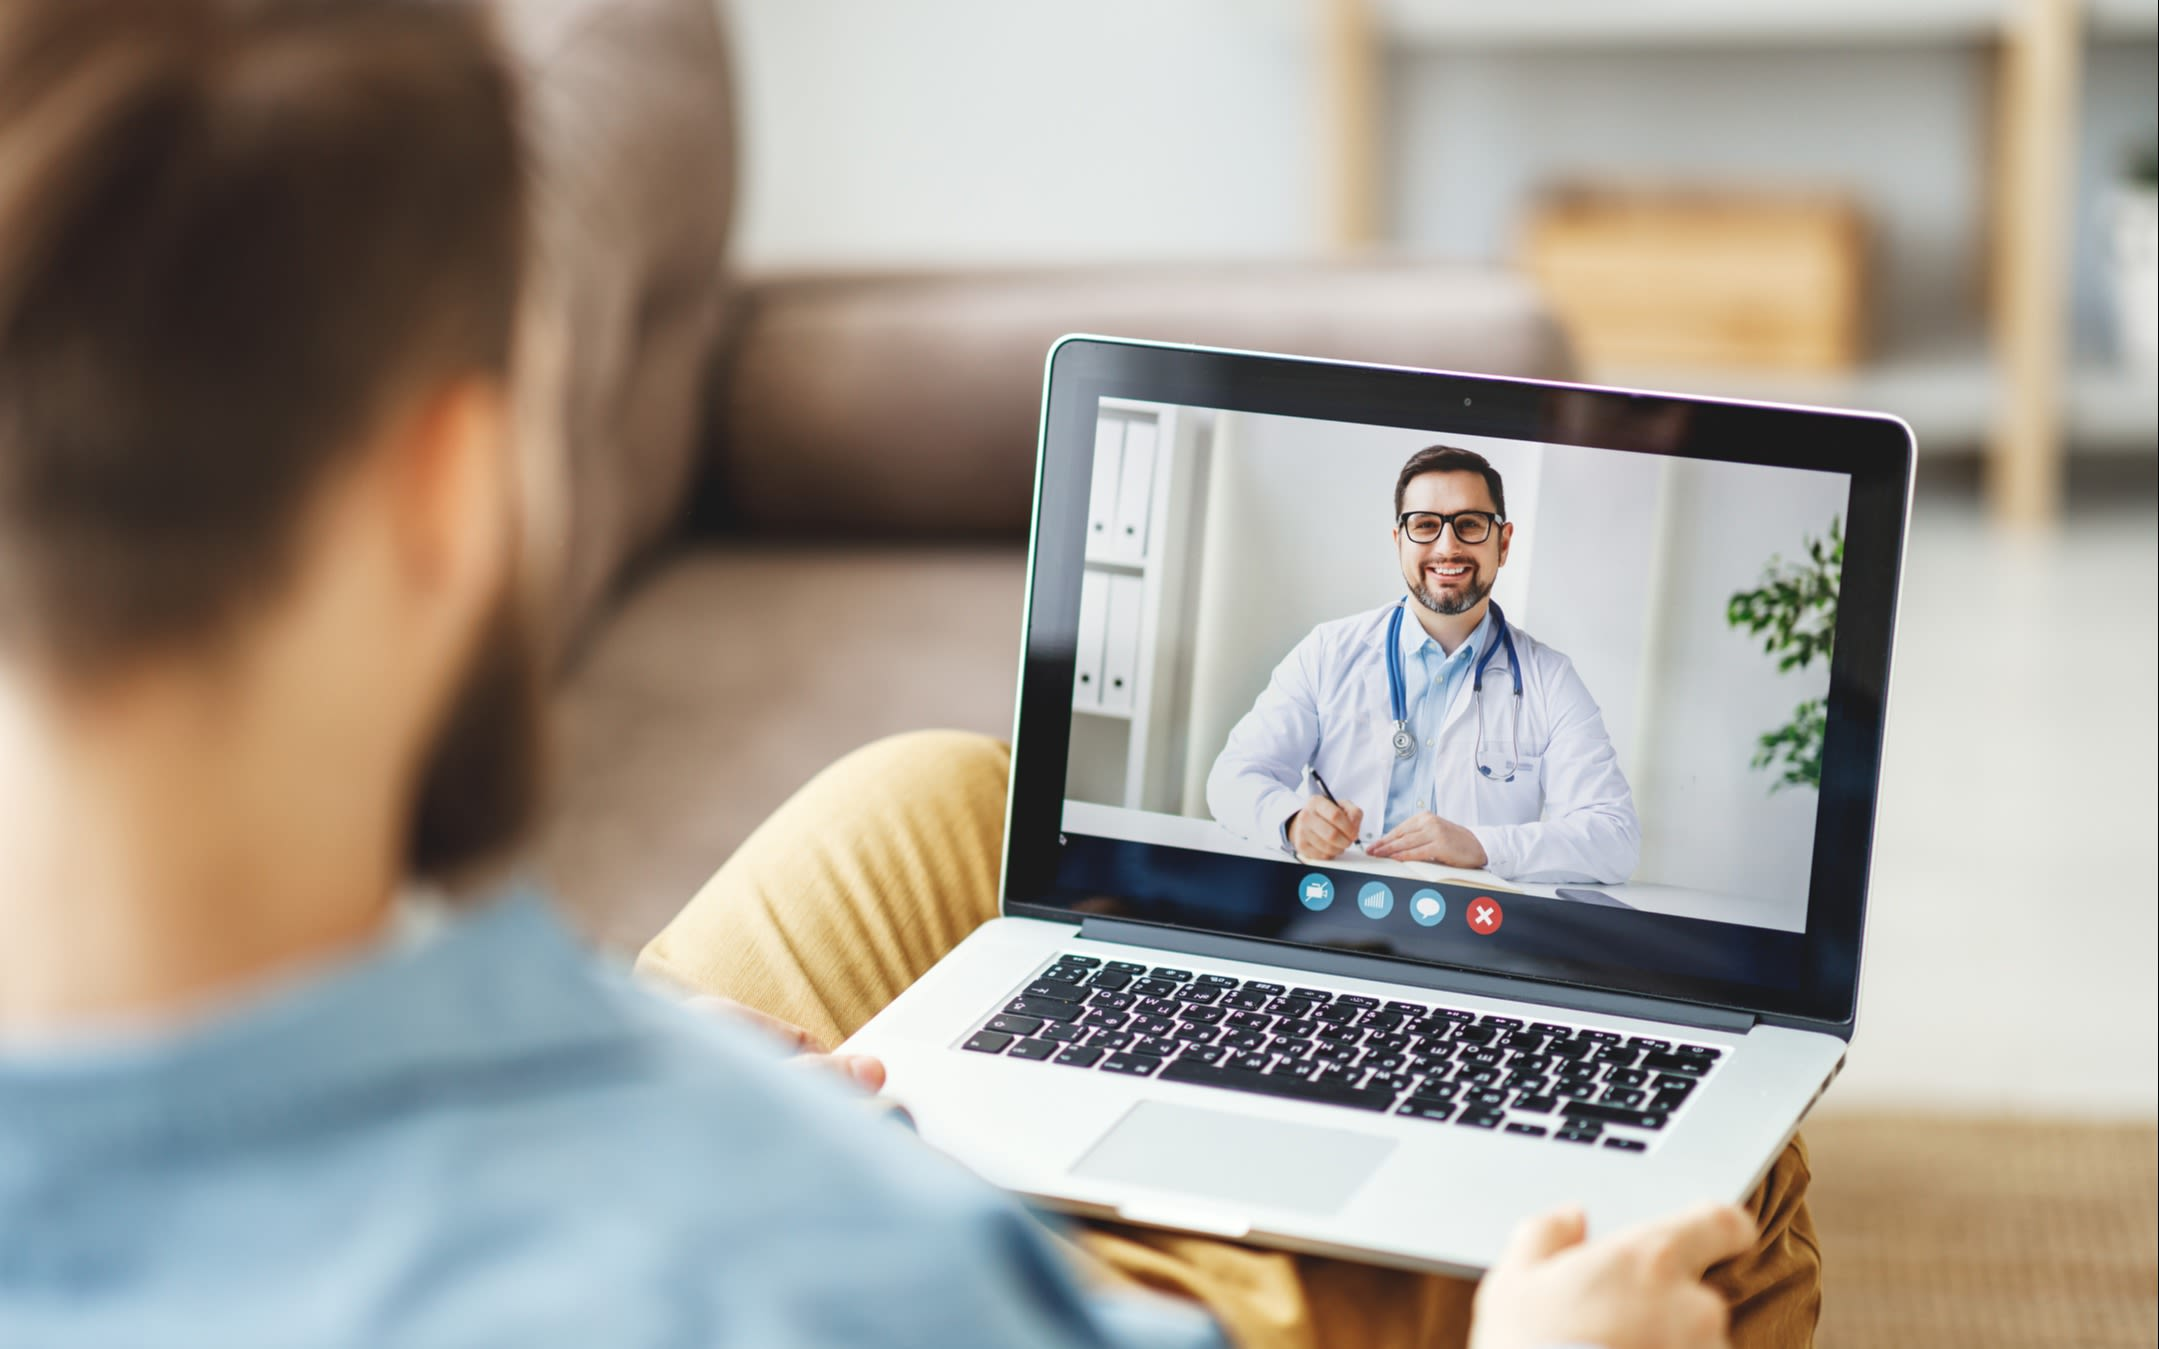 A doctor carries out a virtual consultation with a patient